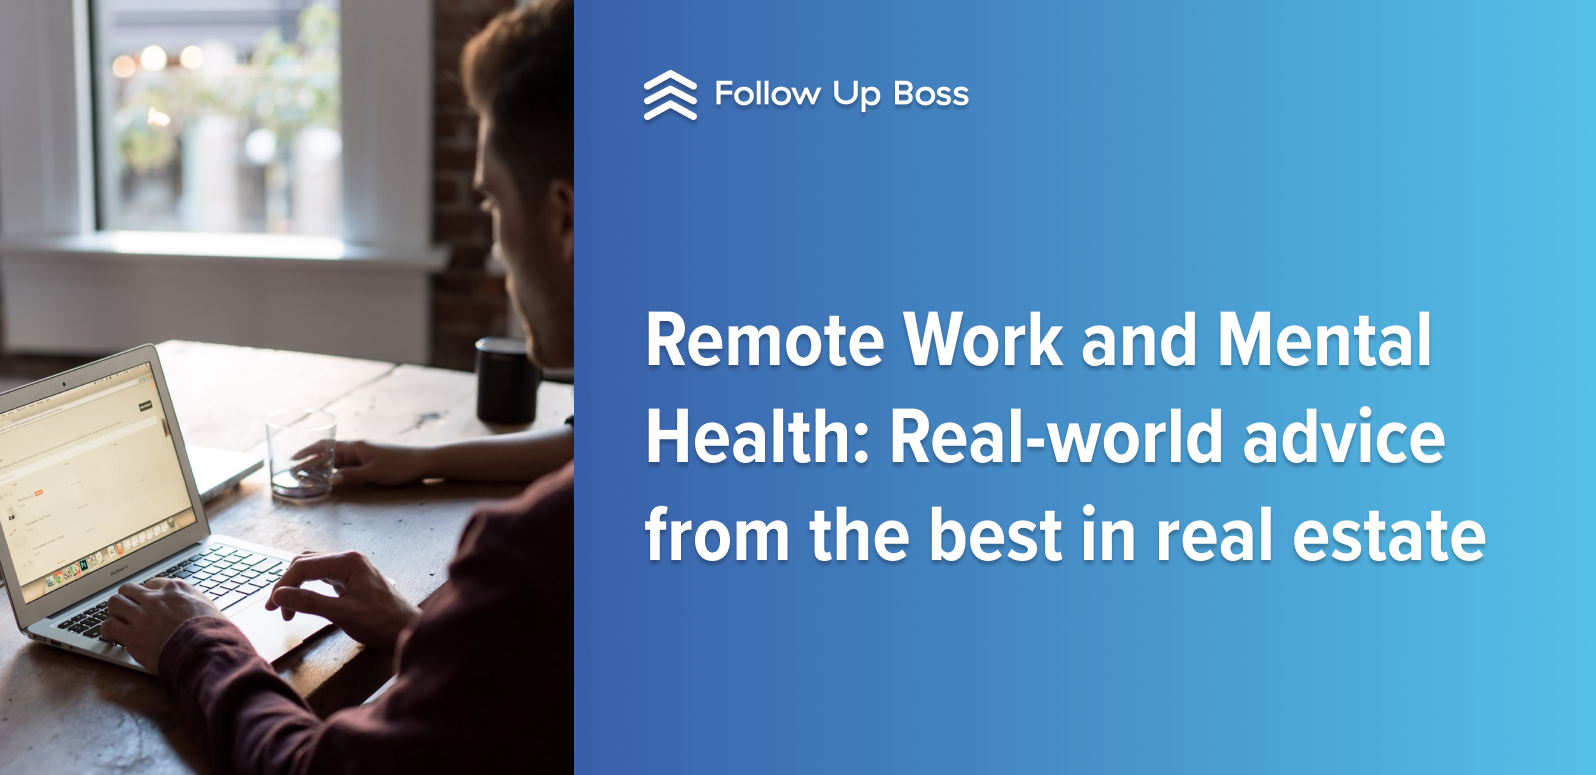 Remote Work and Mental Health: Real-world advice from the best in real estate